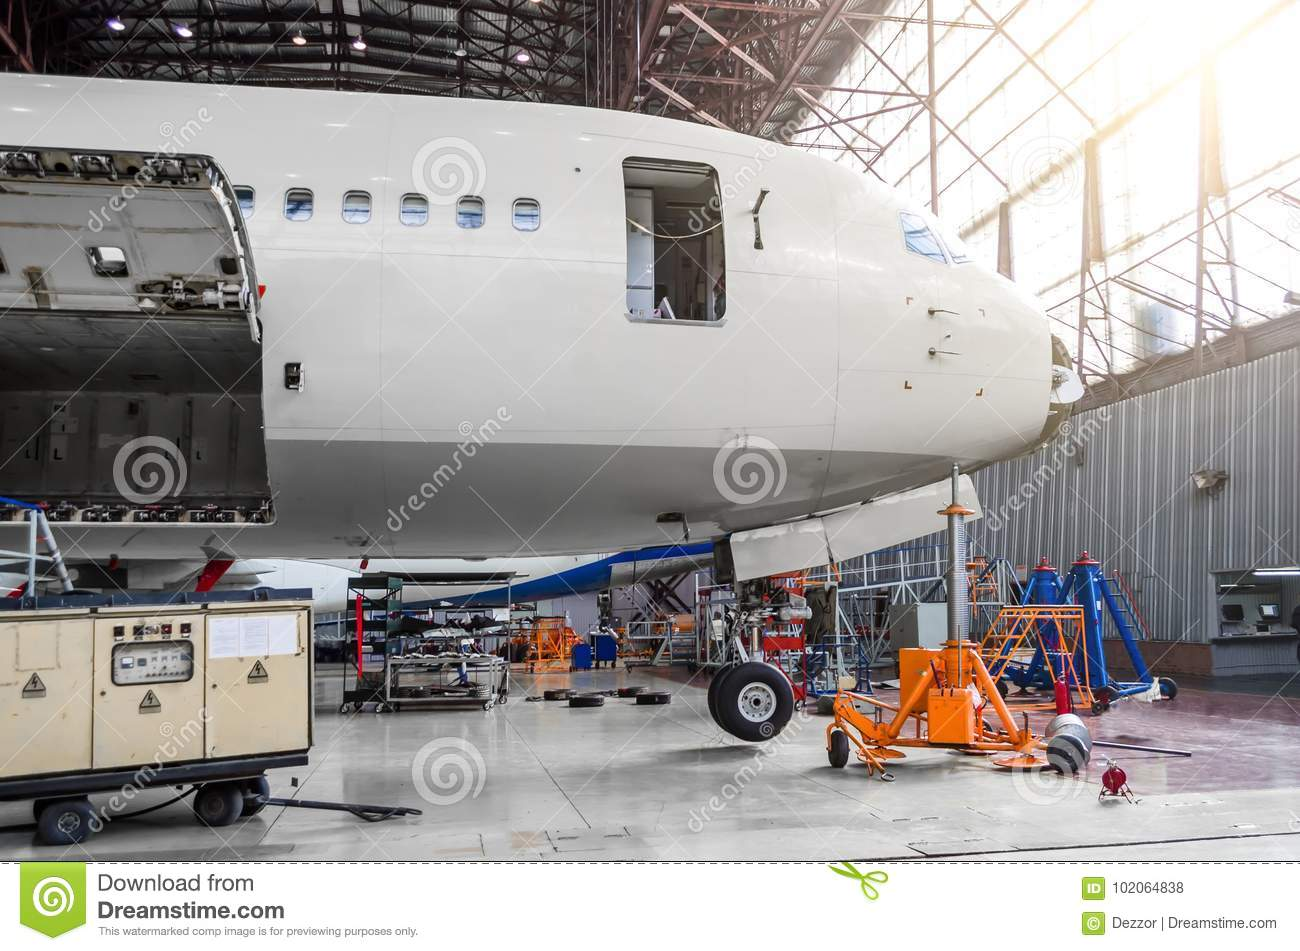 Download Nasal Part Of The Aircraft, The Cockpit, The Trunk, In The Hangar On Maintenance Repair. Stock Photo - Image of airliner, detail: 102064838